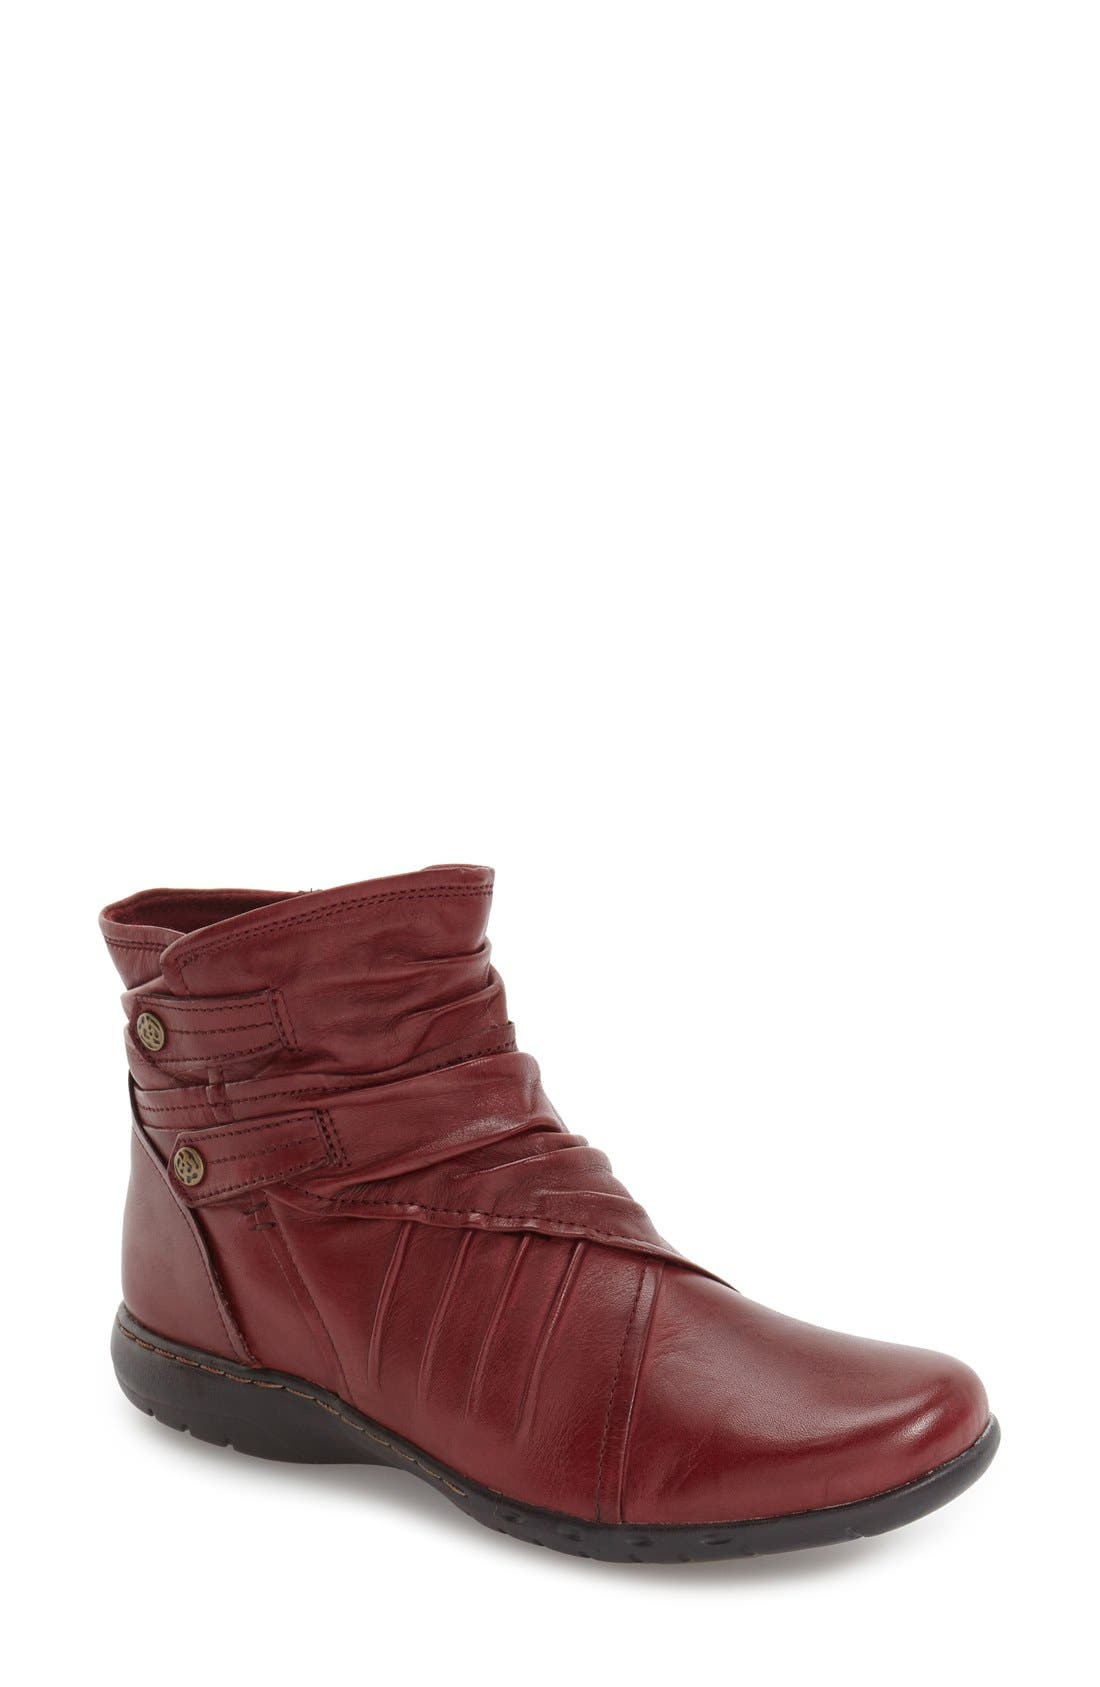 Alternate Image 1 Selected - Rockport Cobb Hill 'Pandora' Boot